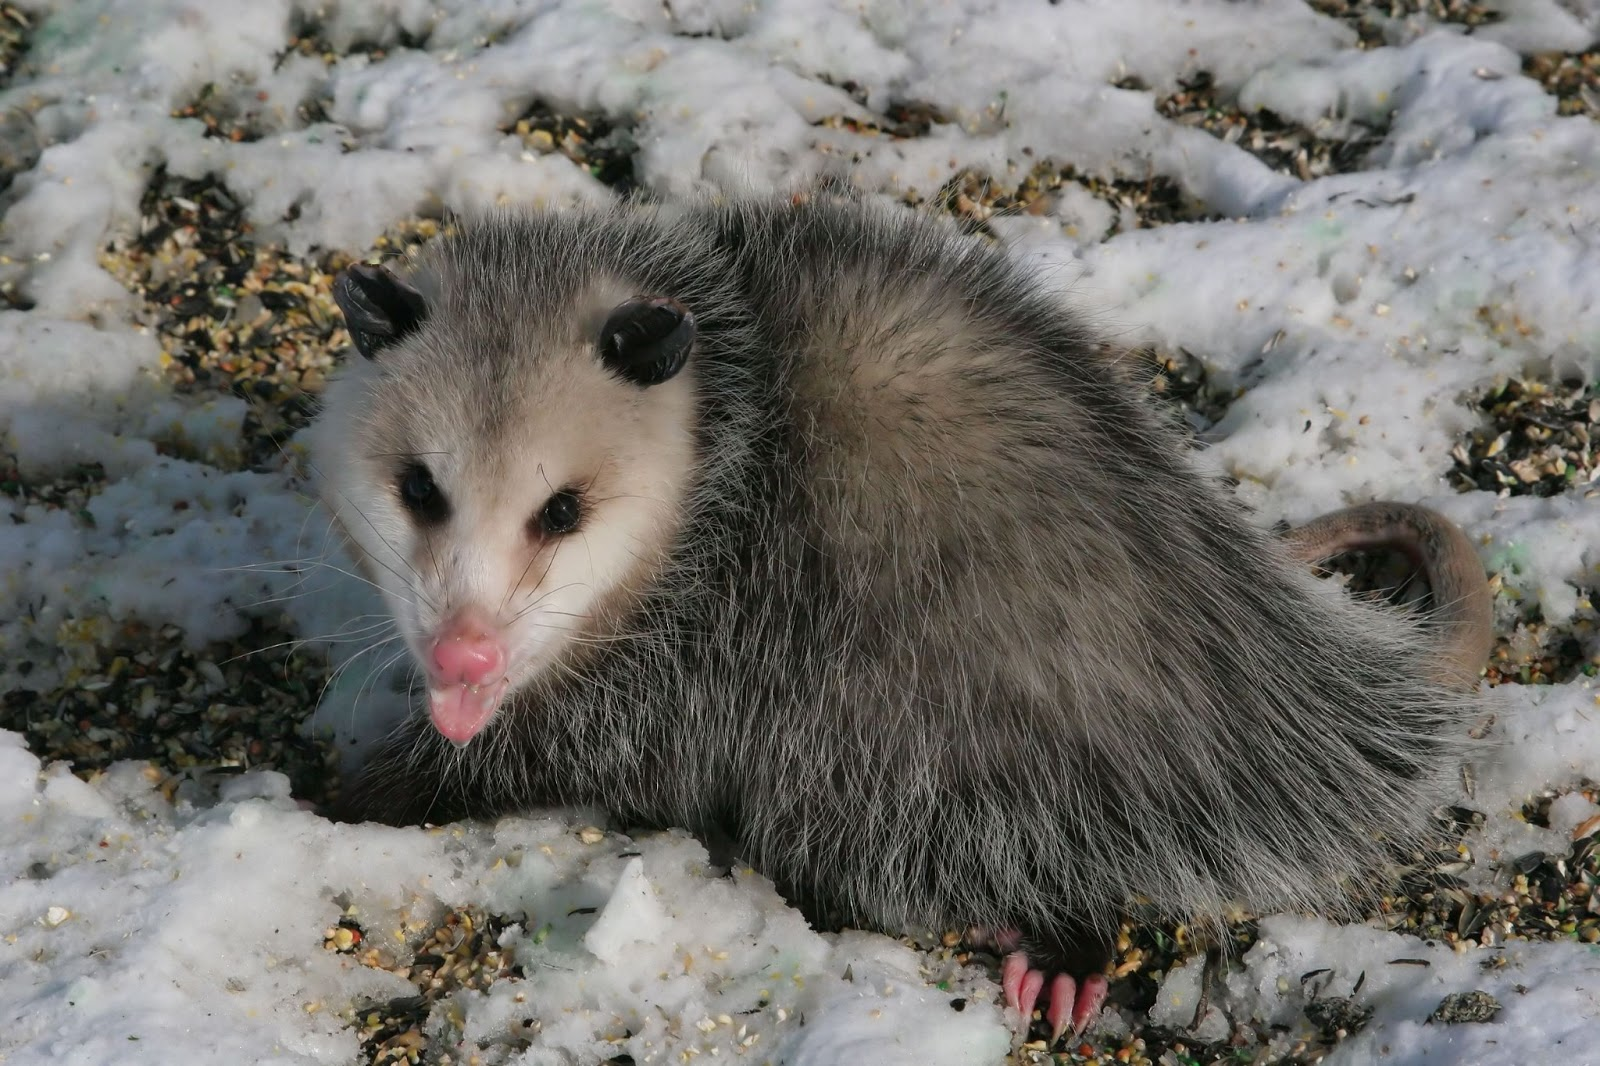 Opossum Habitat Pictures on Animal Picture Society